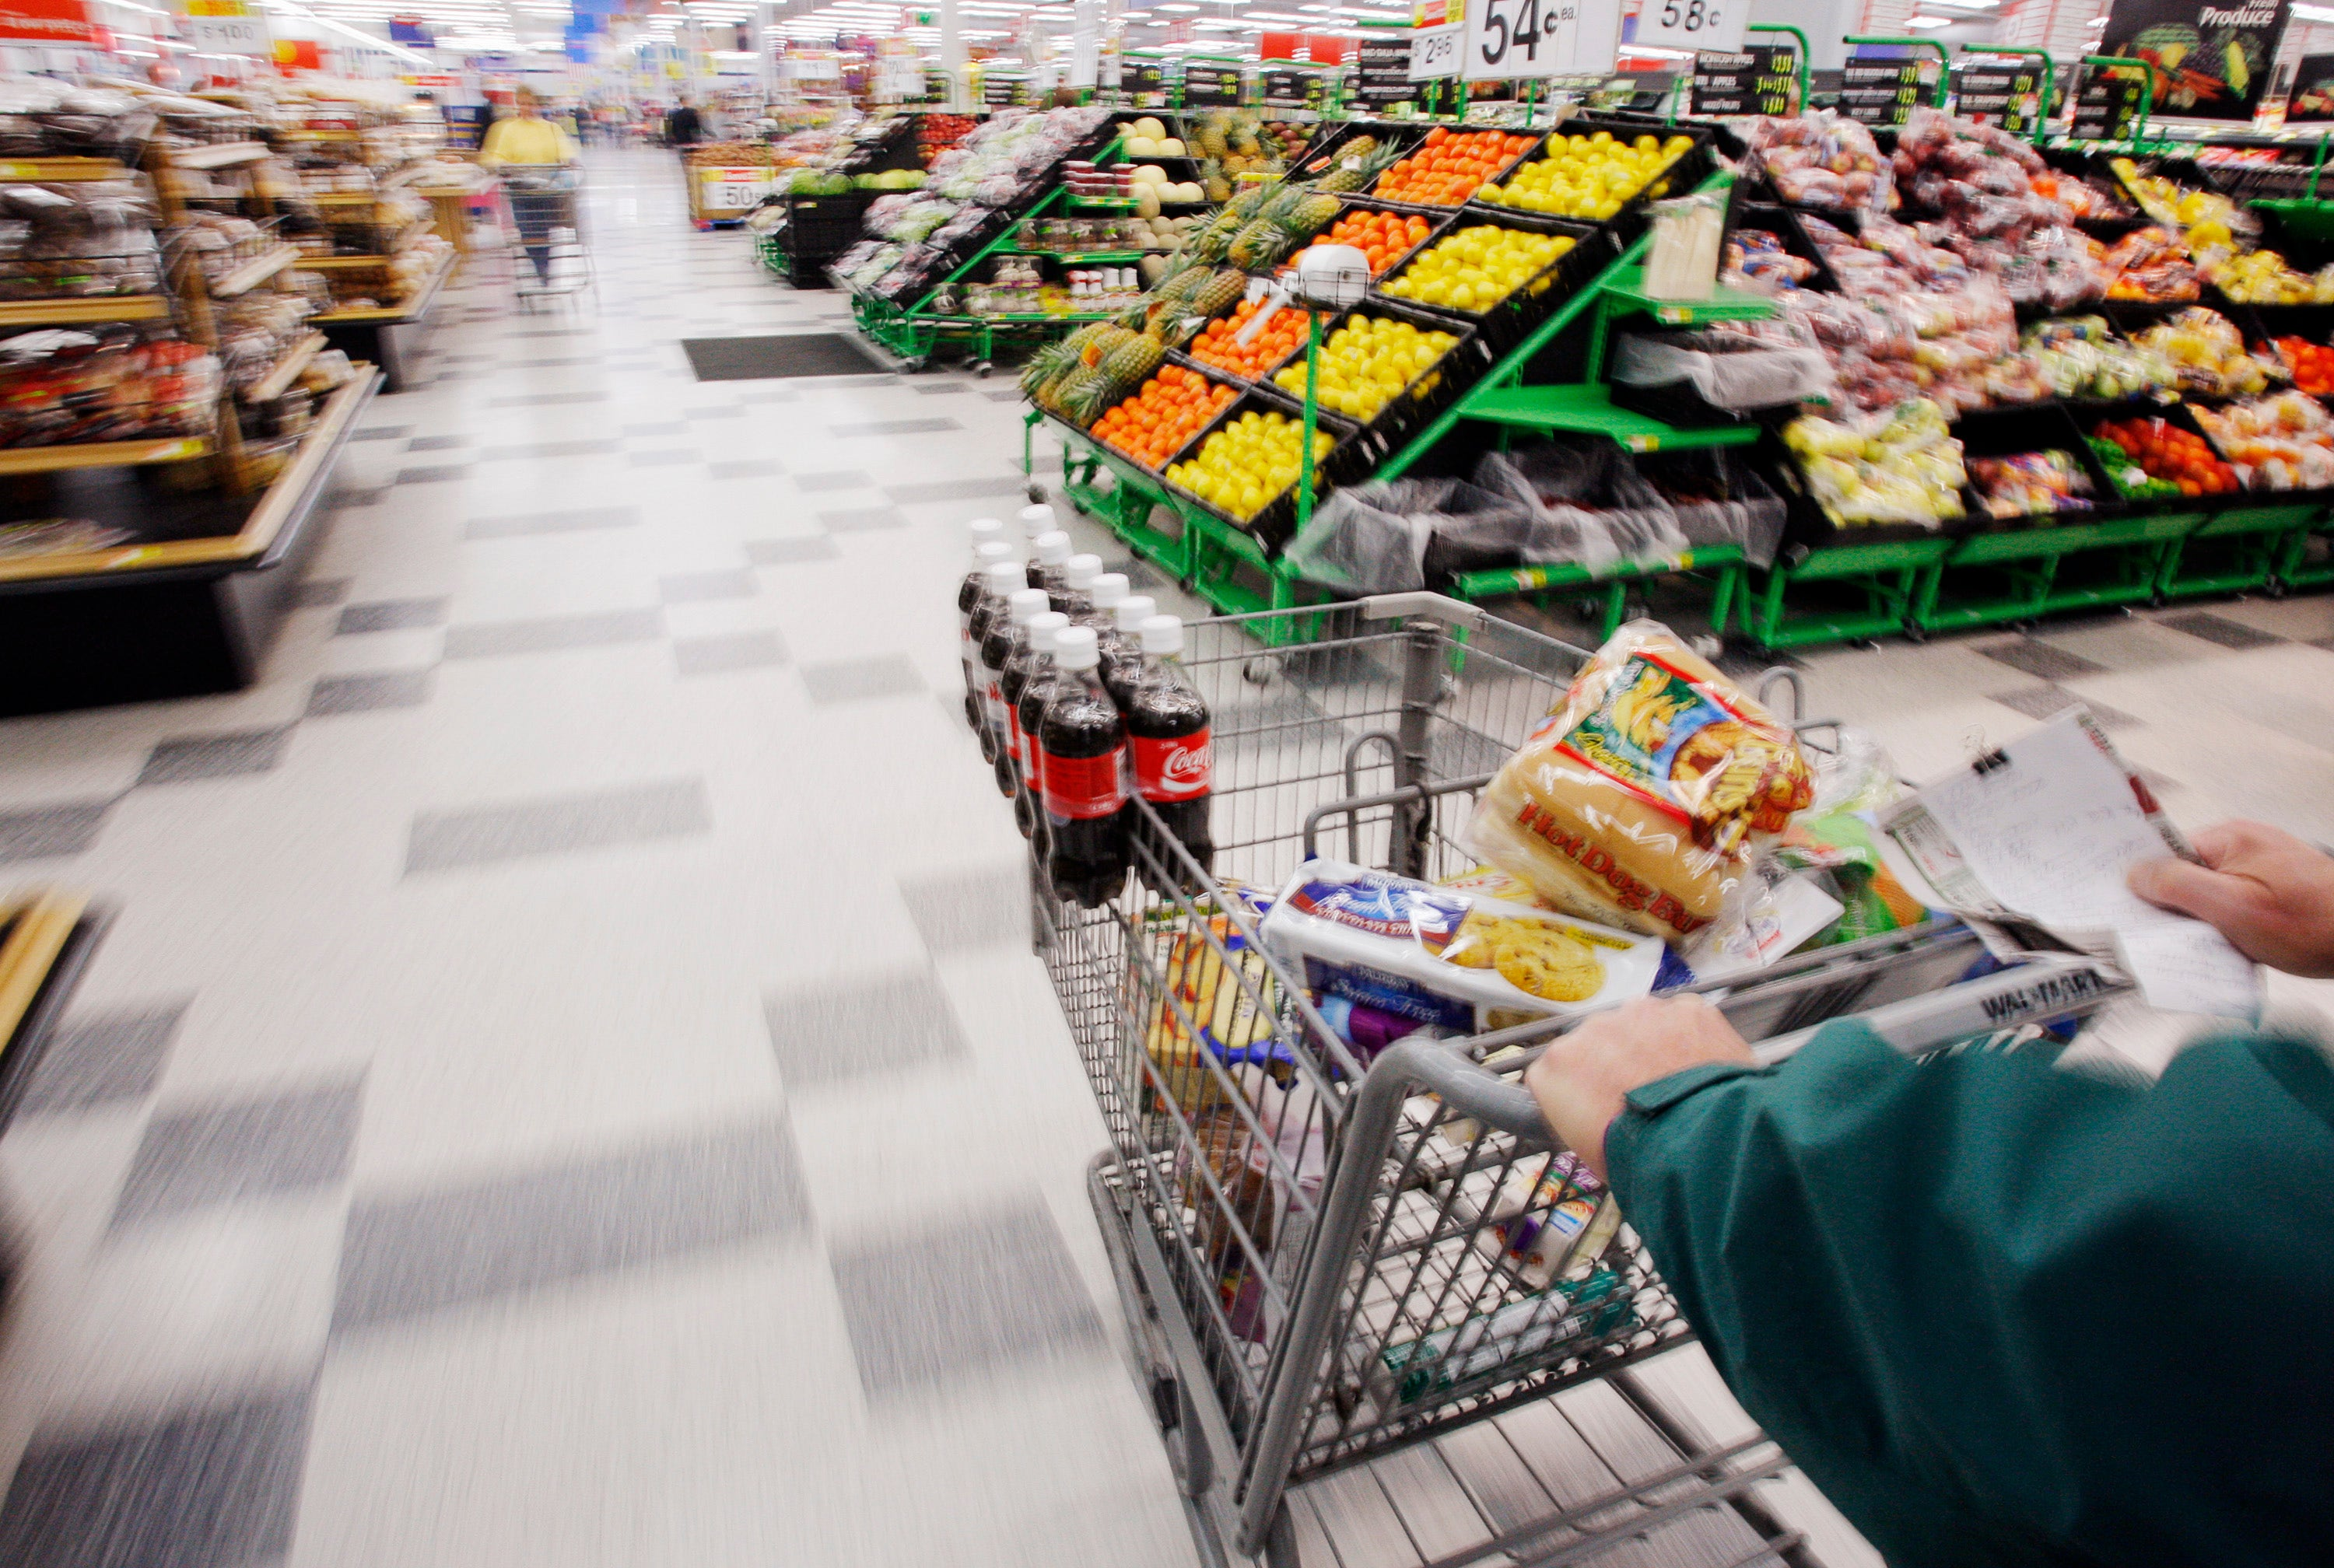 Grocery%20Supermarket%20Shopping%20Cart.